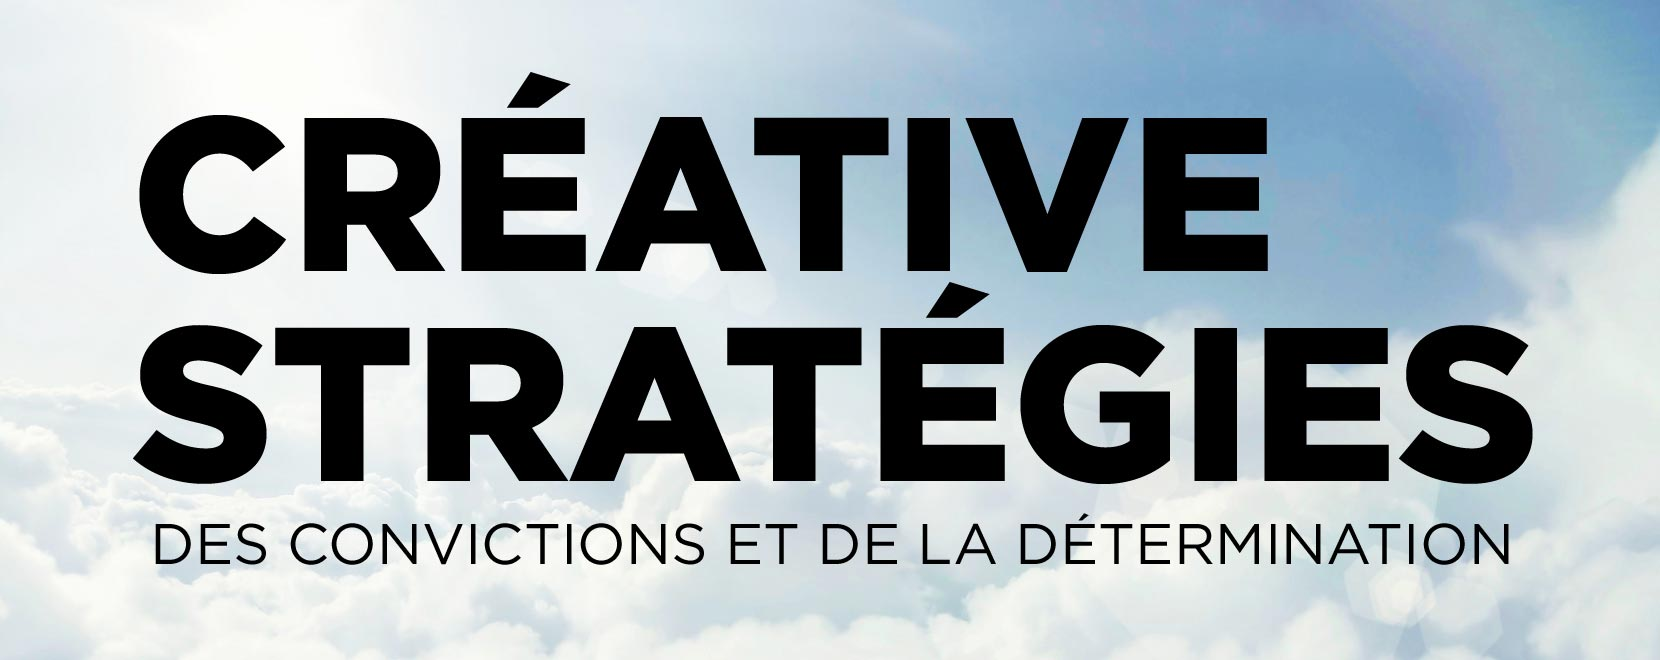 slider-creativ-strategie